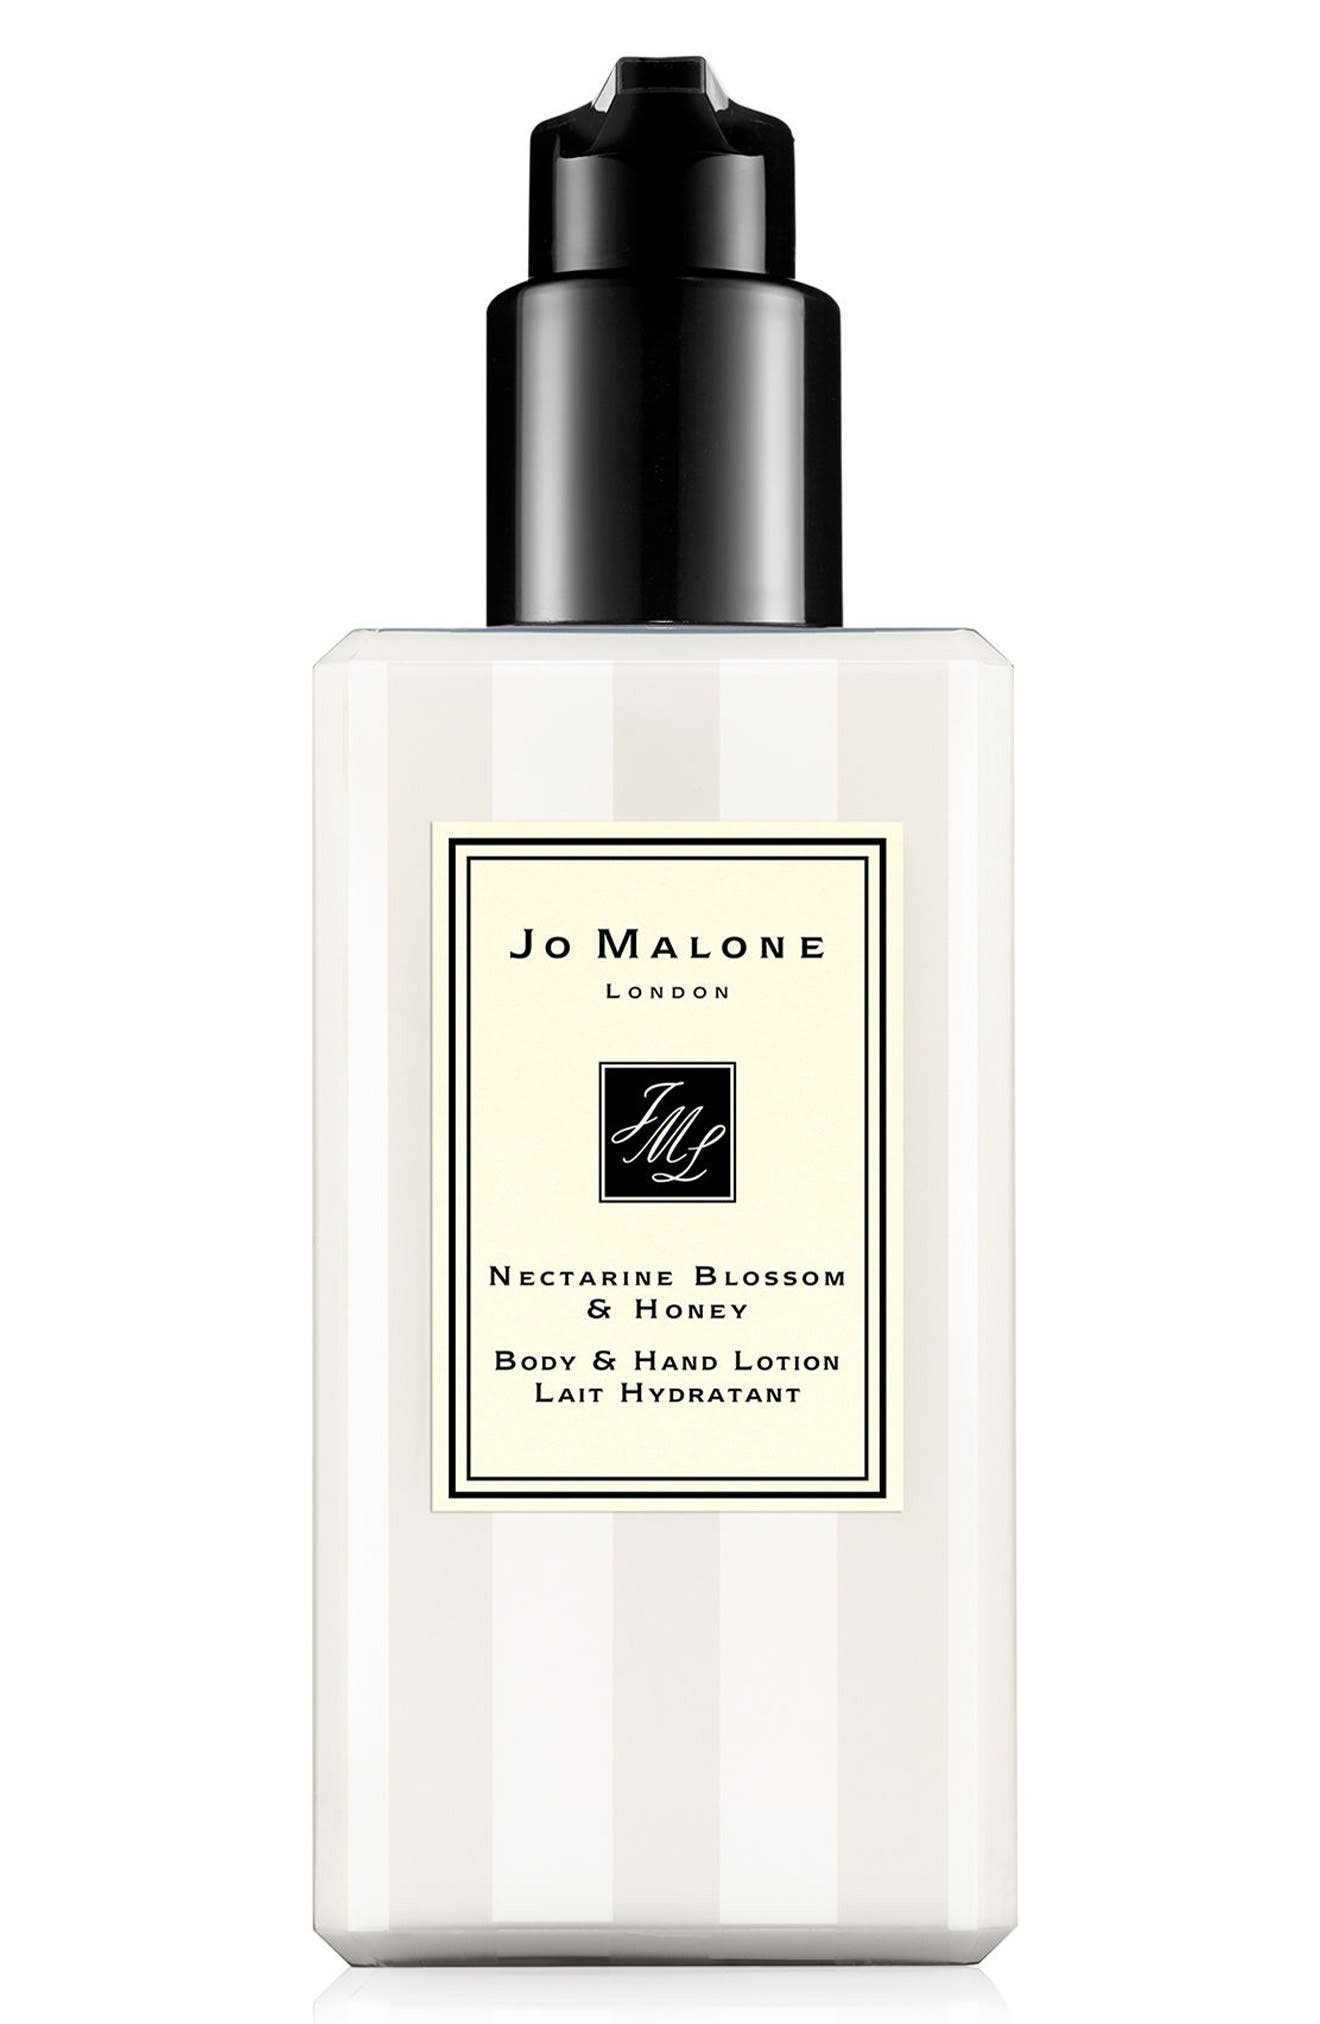 Jo Malone London™ Nectarine Blossom & Honey Body & Hand Lotion